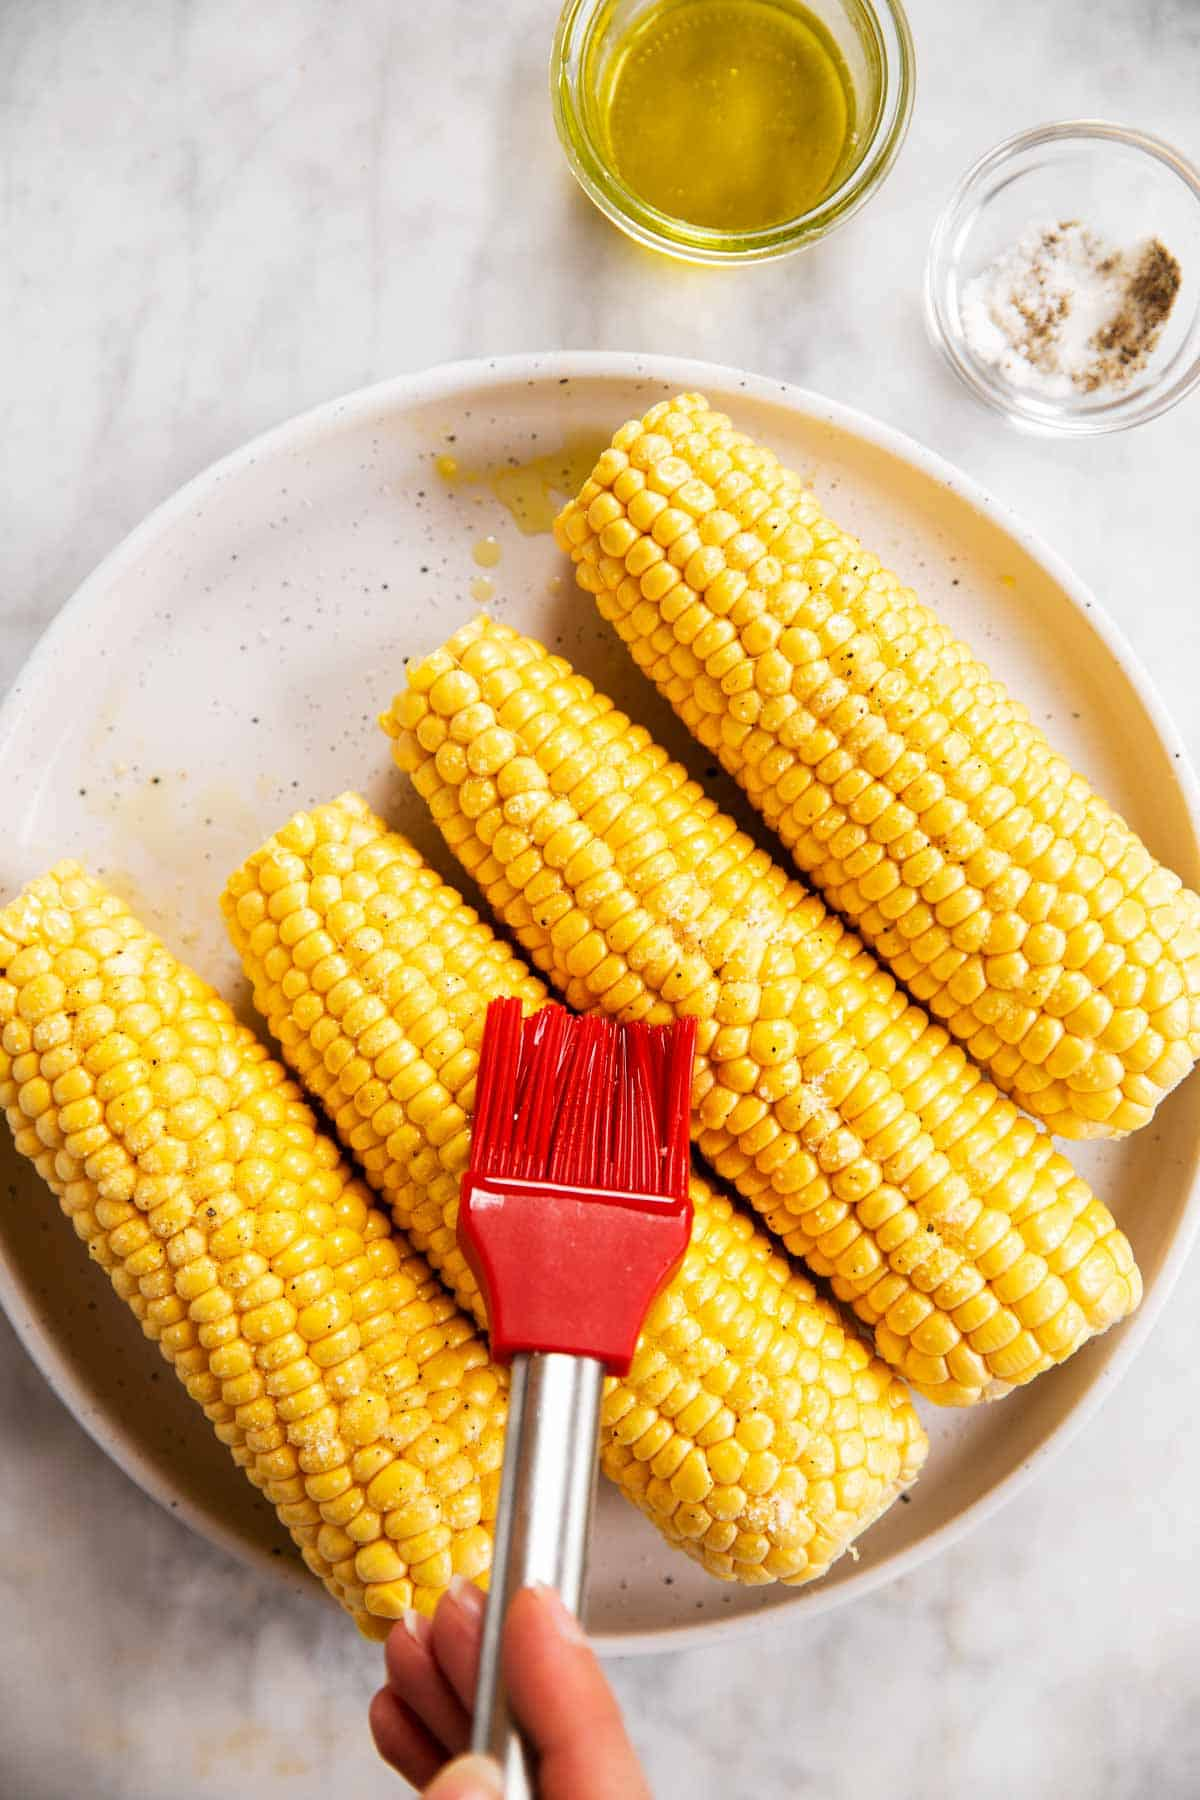 four ears of shucked corn on white plate, female hand brushing one with oil using a red pastry brush